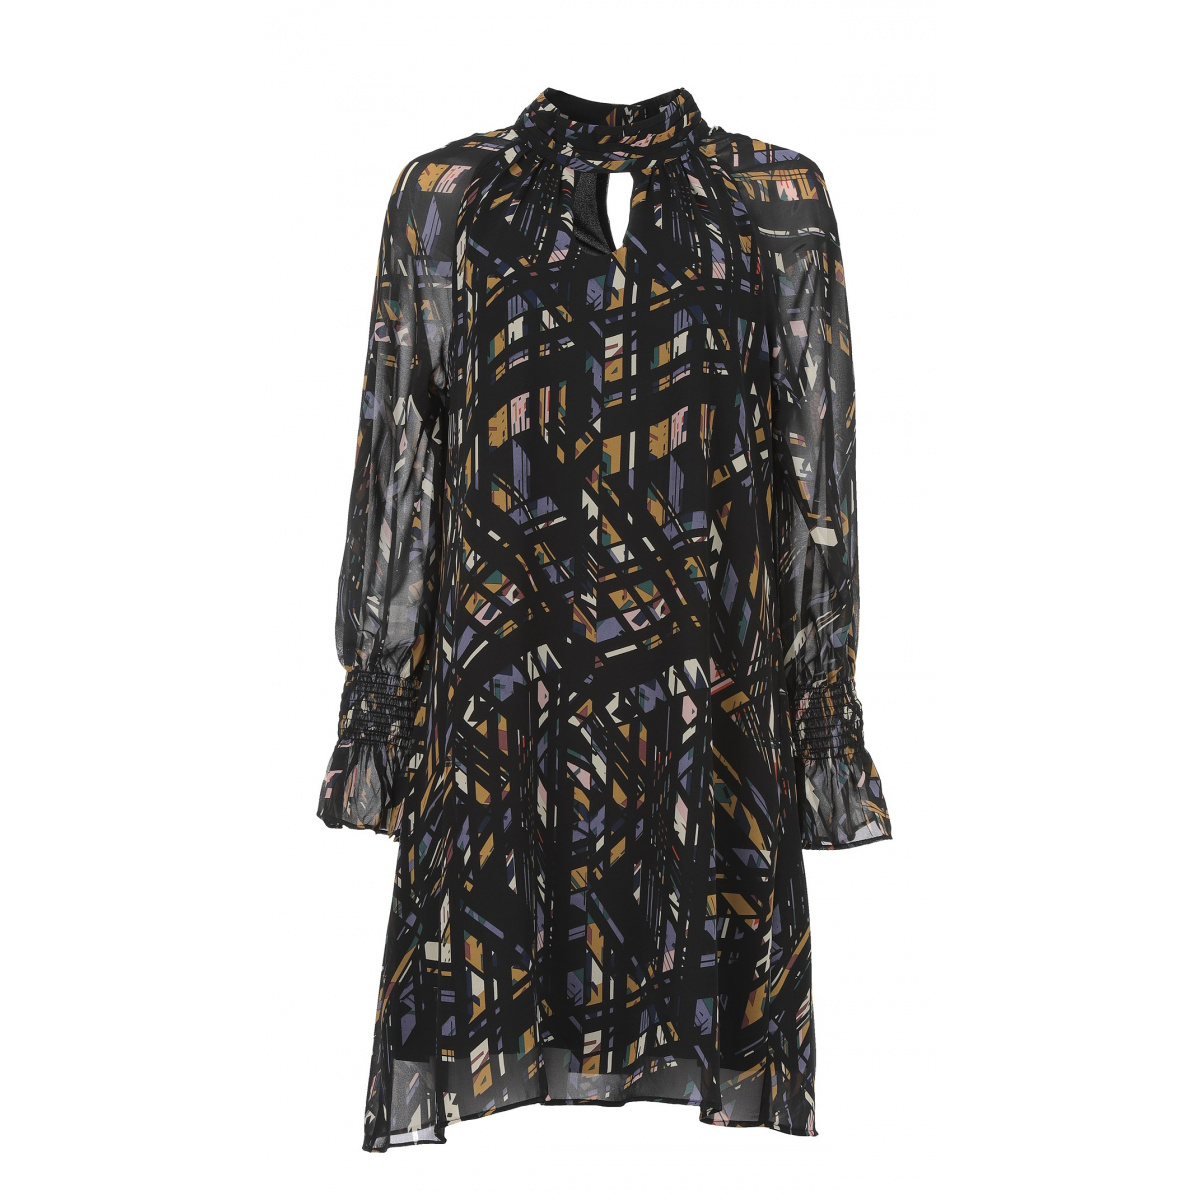 sells huge selection of sale usa online MOLLY BRACKEN Robe manches longues femme noir